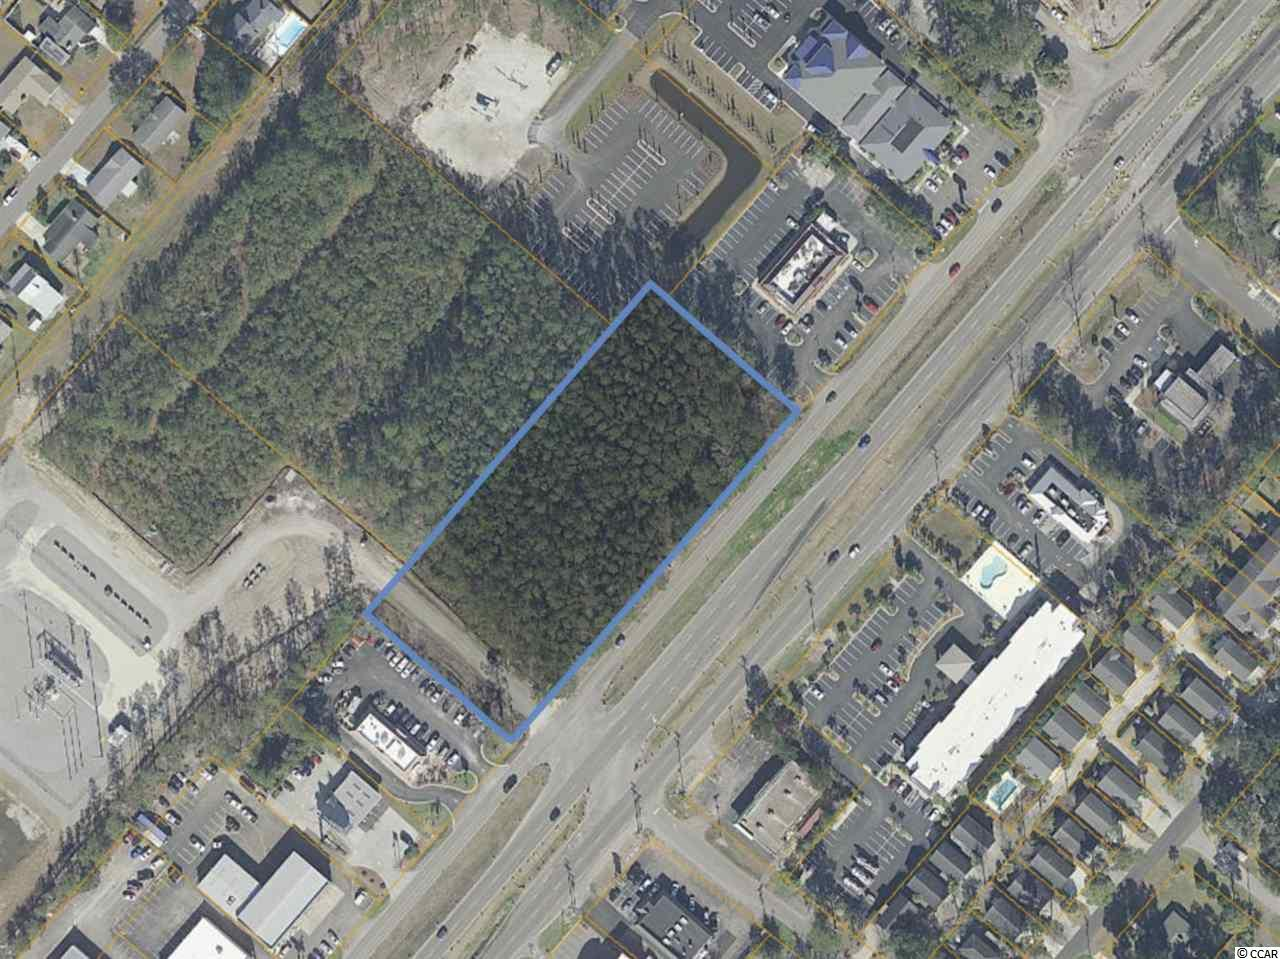 Ground Lease opportunity for this busy Hwy 17 Business Surfside Beach parcel. The site has 2.59 acres of land with over 500 feet of Highway Frontage.   Daily Traffic Count is 31,700 ( Source SCDOT 2019).    Surrounding business include:  Johnny D's Breakfast Restaurant, The tasty Platter, Jiffy Lube, Bank of America, and in close proximity to the entrance to Plantation Resort.  Surfside Beach is a growing family beach town with numerous Family Campground.   Acreage is approximate and not guaranteed. Lessee is responsible for verification.